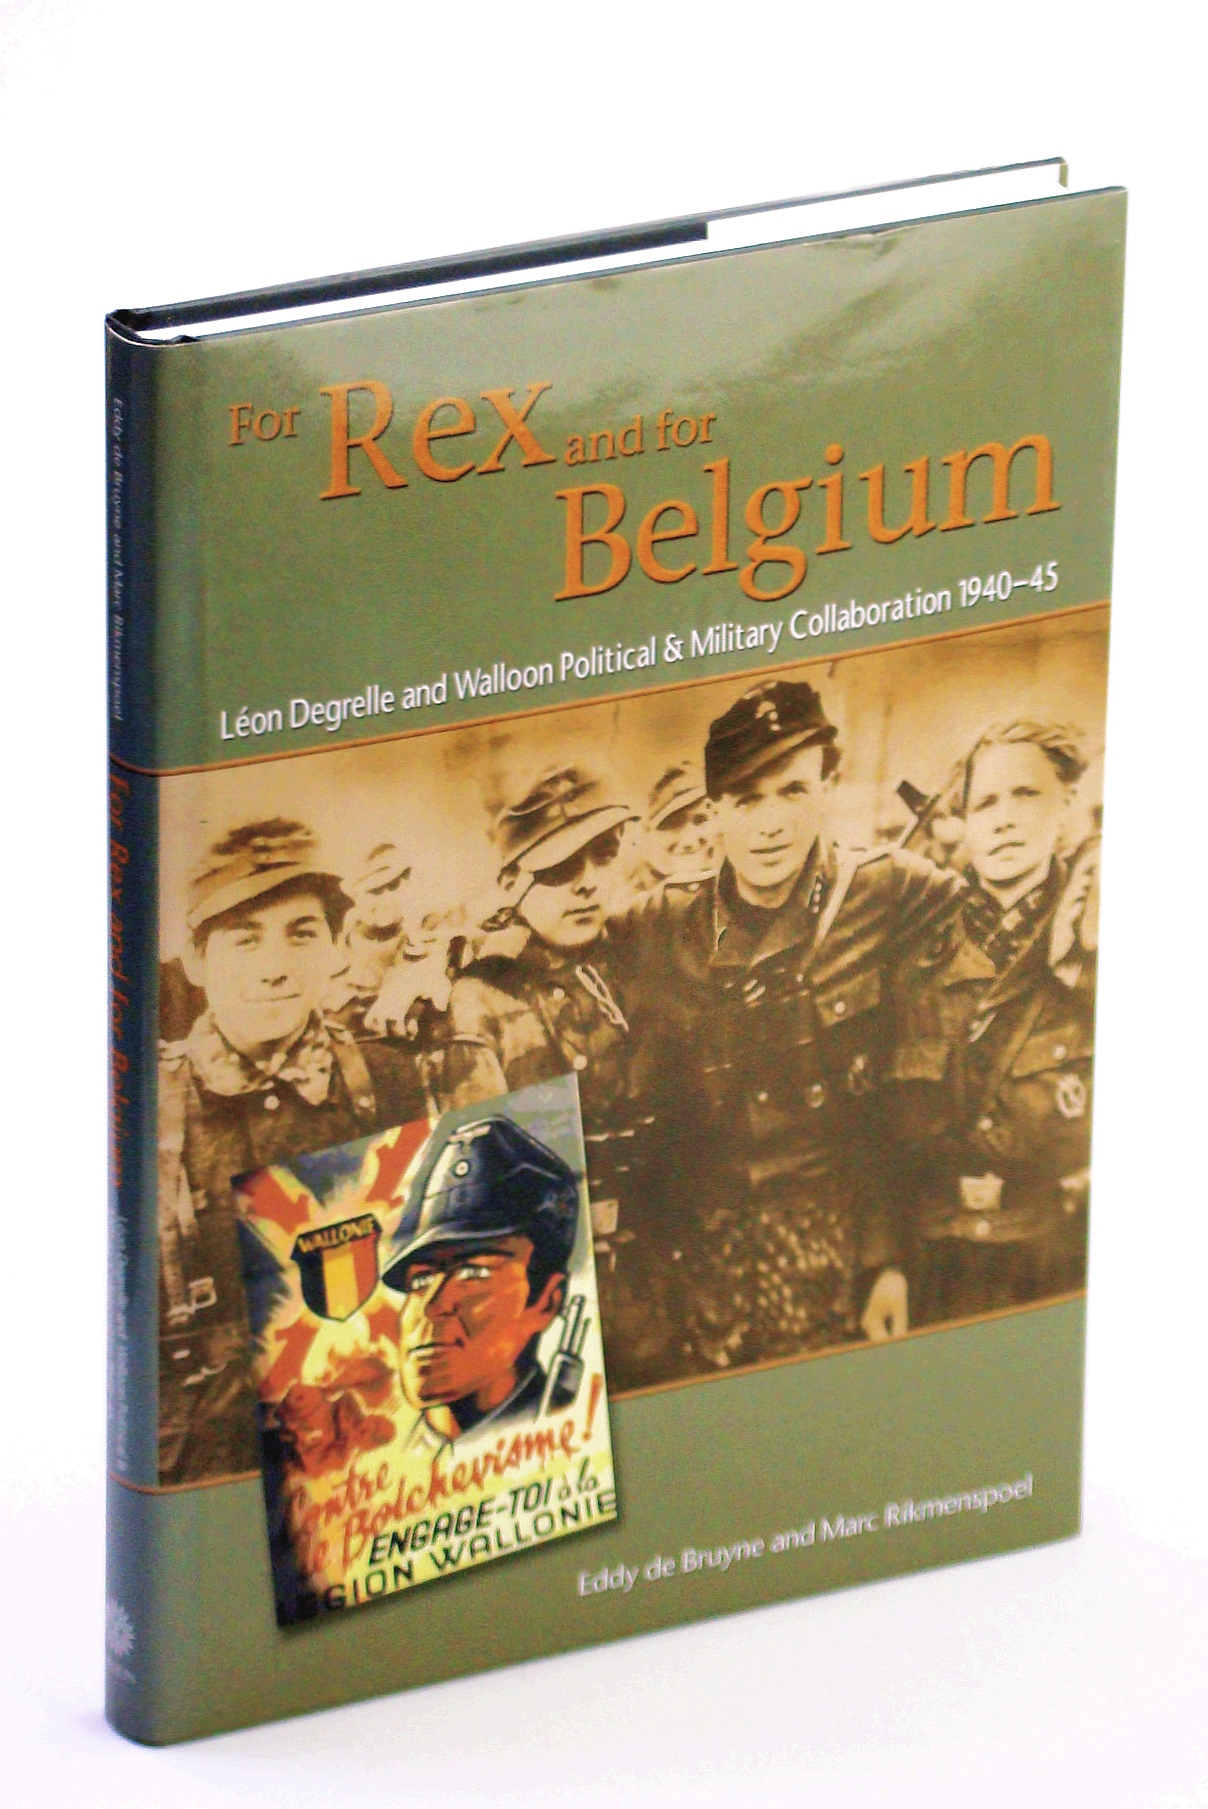 Image for For Rex and for Belgium: Léon Degrelle and Walloon Political and Military Collaboration 1940-45